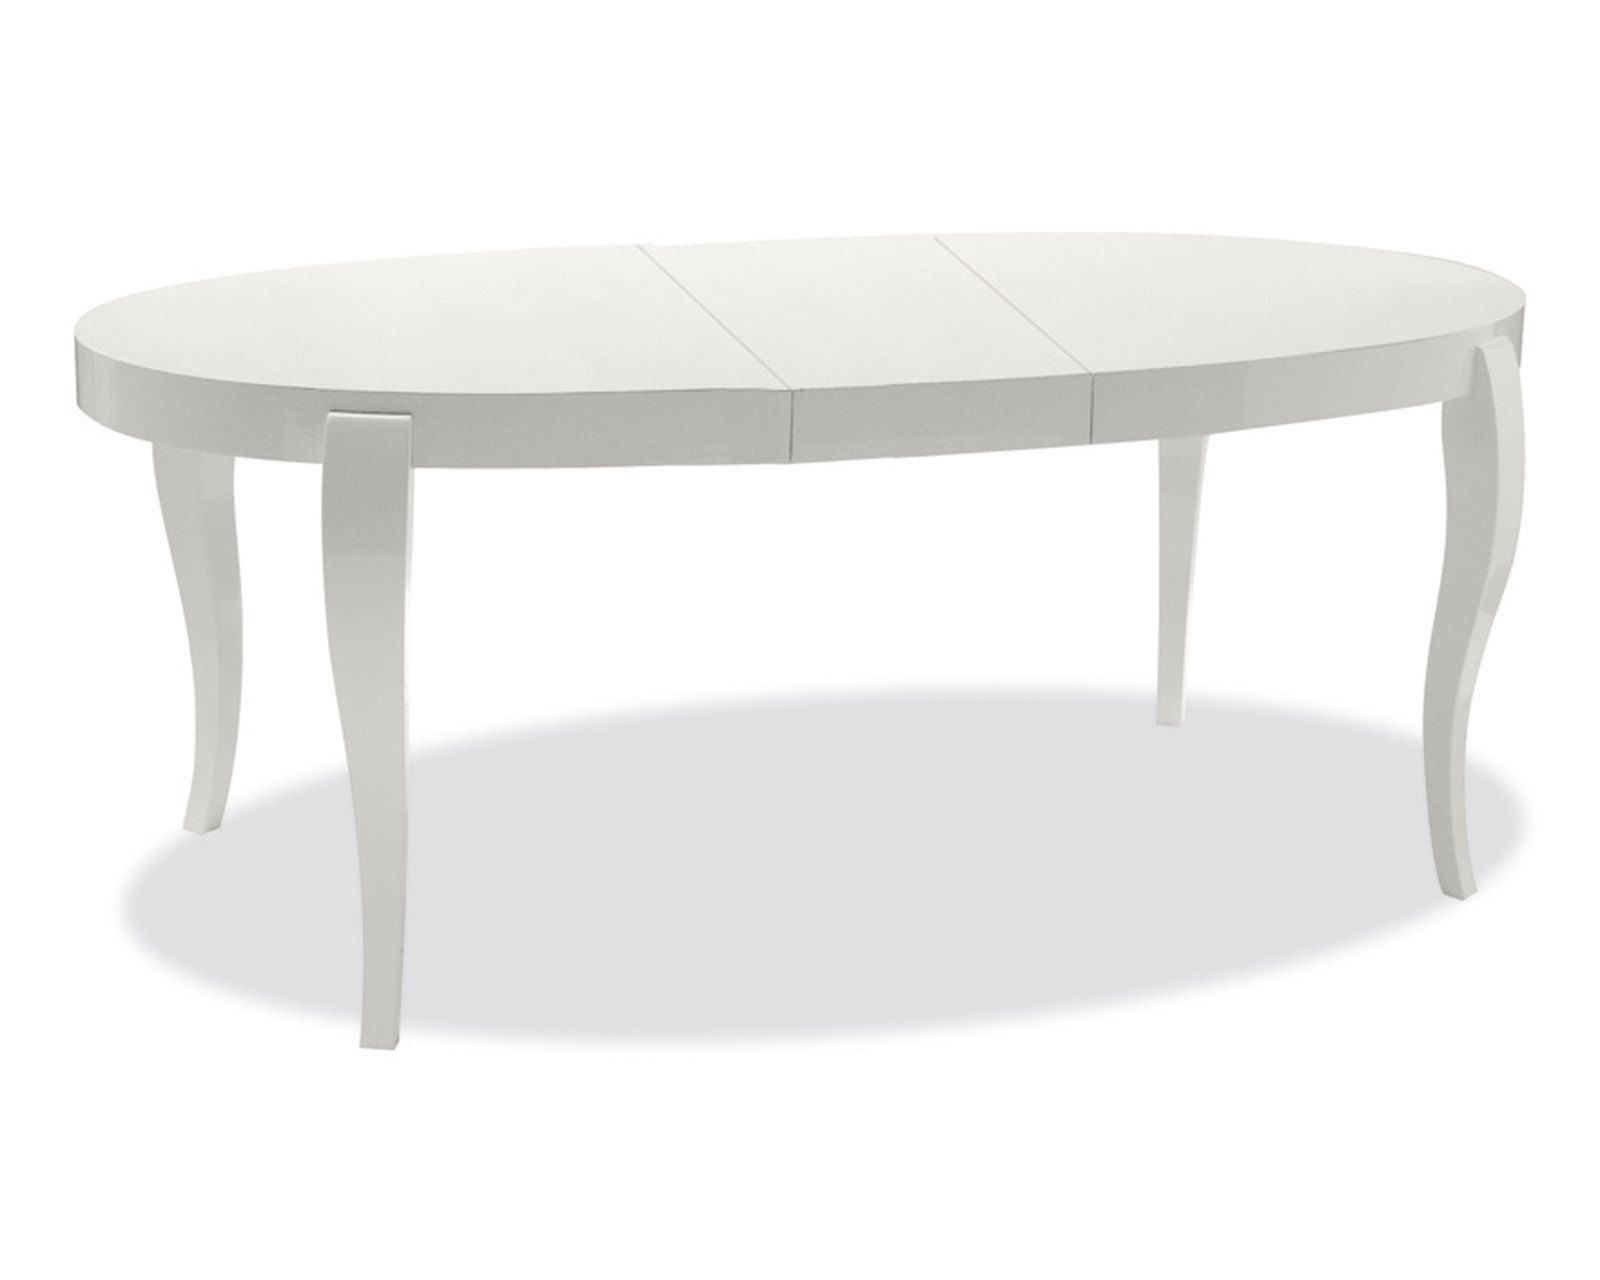 Calligaris Regency classic oval dining table Calligaris